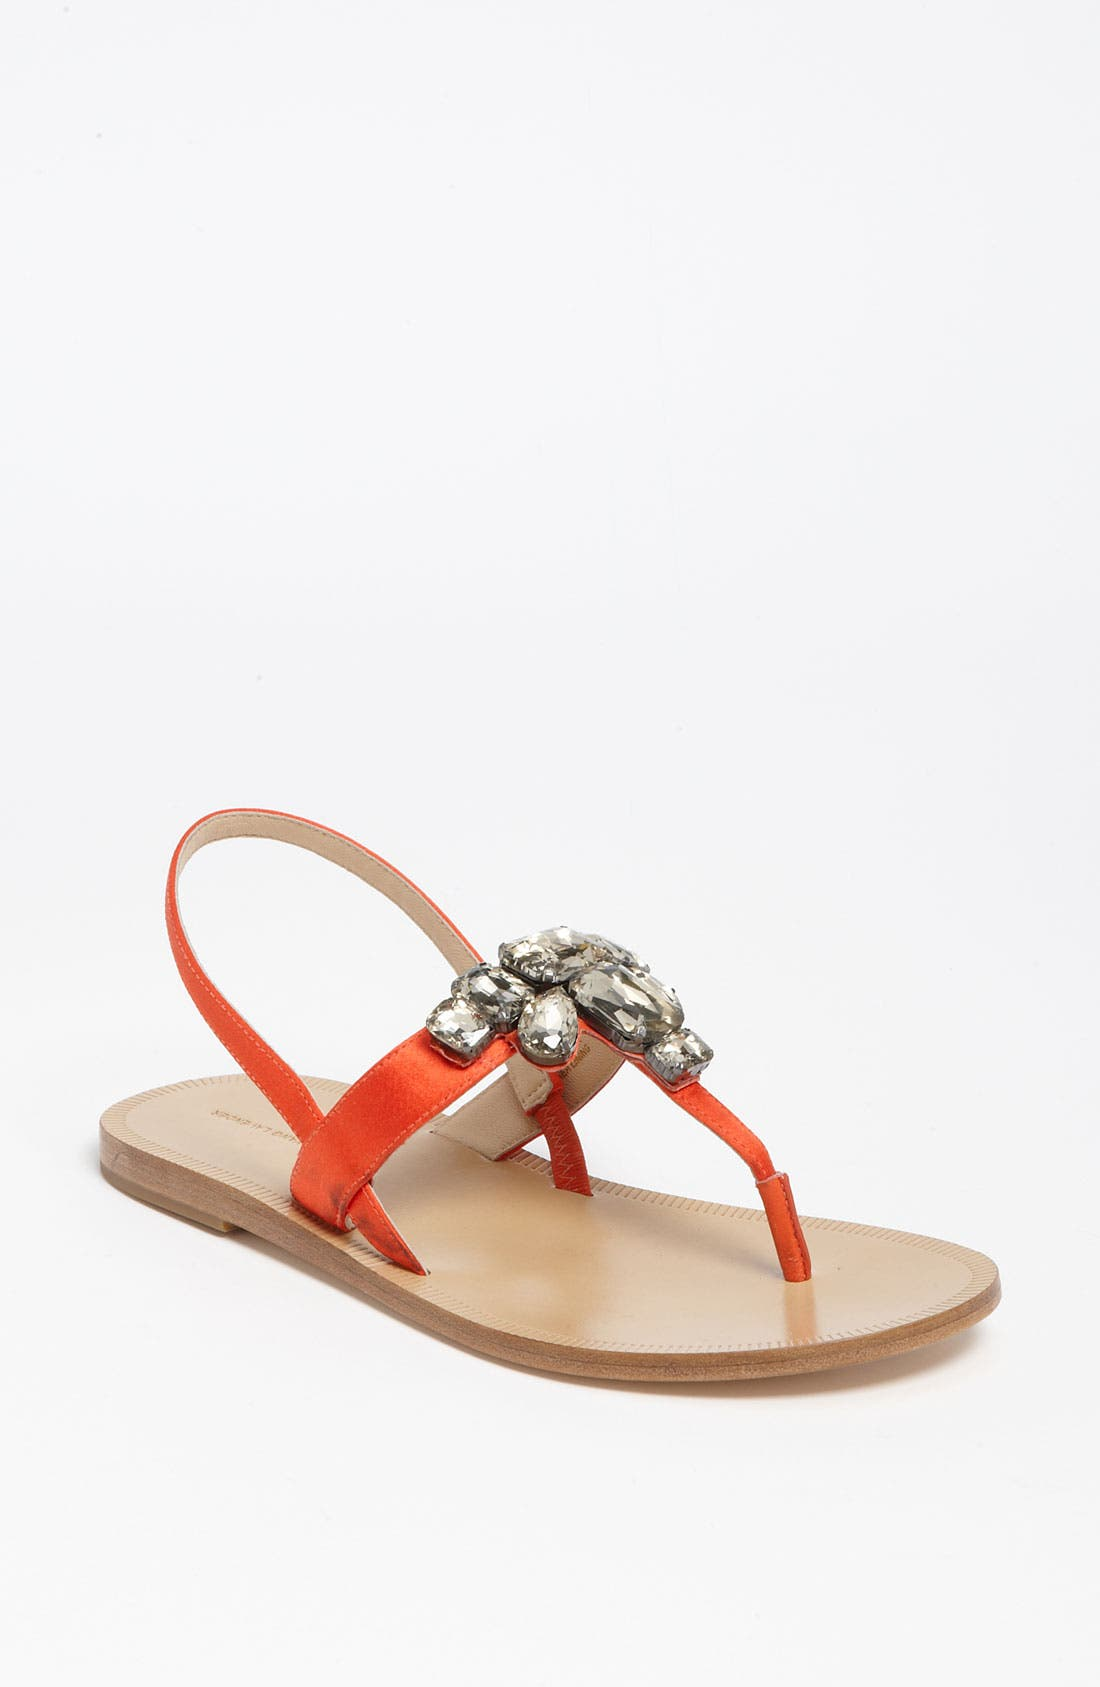 Alternate Image 1 Selected - Vera Wang Lavender 'Rina' Sandal